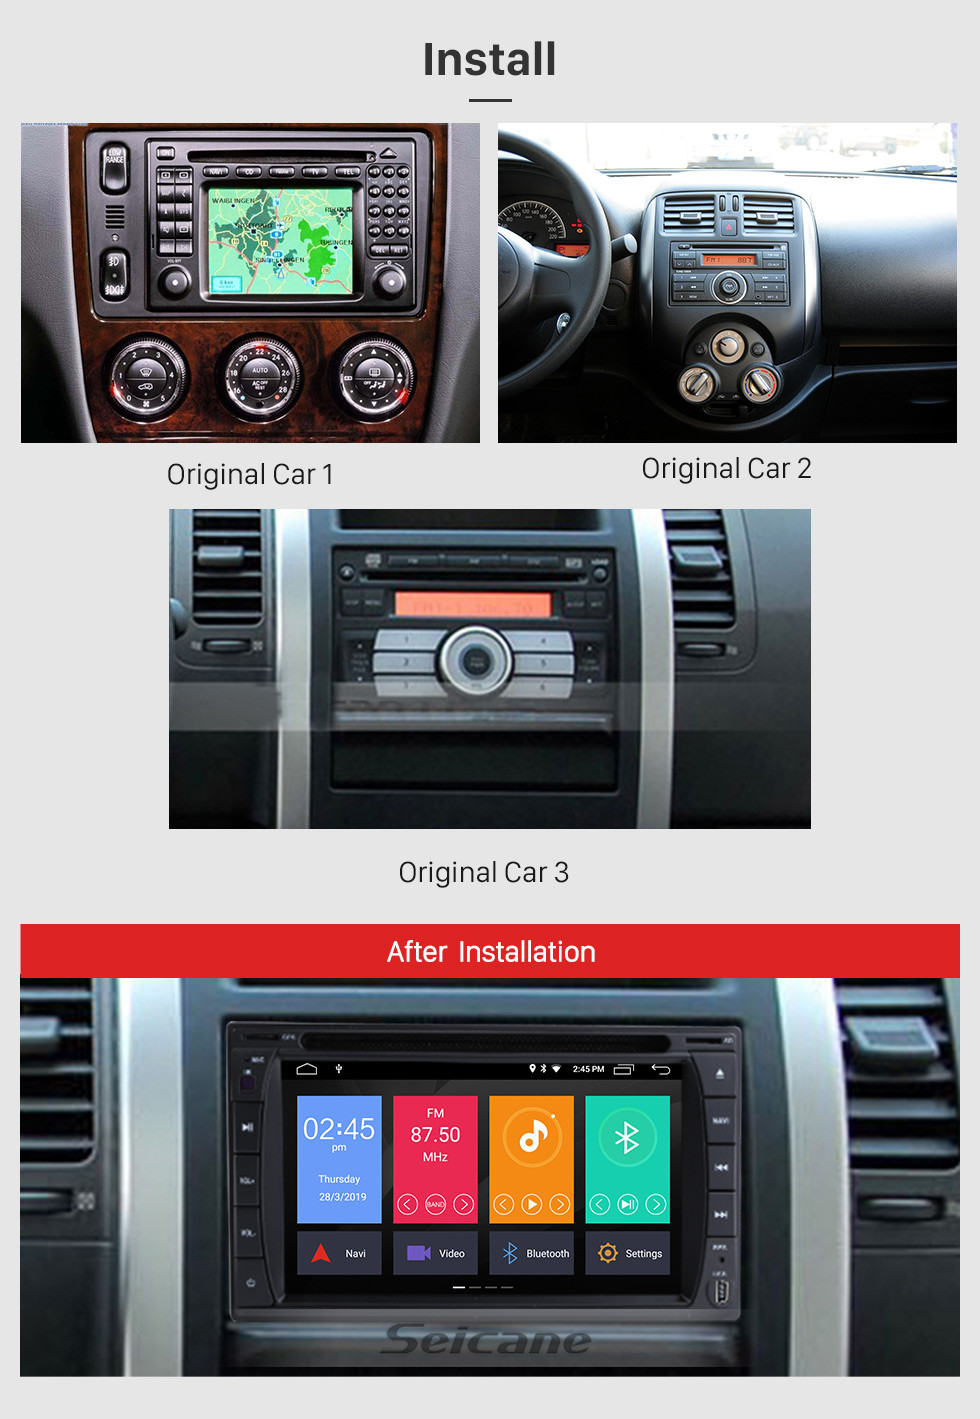 Seicane 6.2 inch GPS Navigation Universal Radio Android 10.0 Bluetooth HD Touchscreen AUX Music support 1080P Digital TV TPMS Carplay